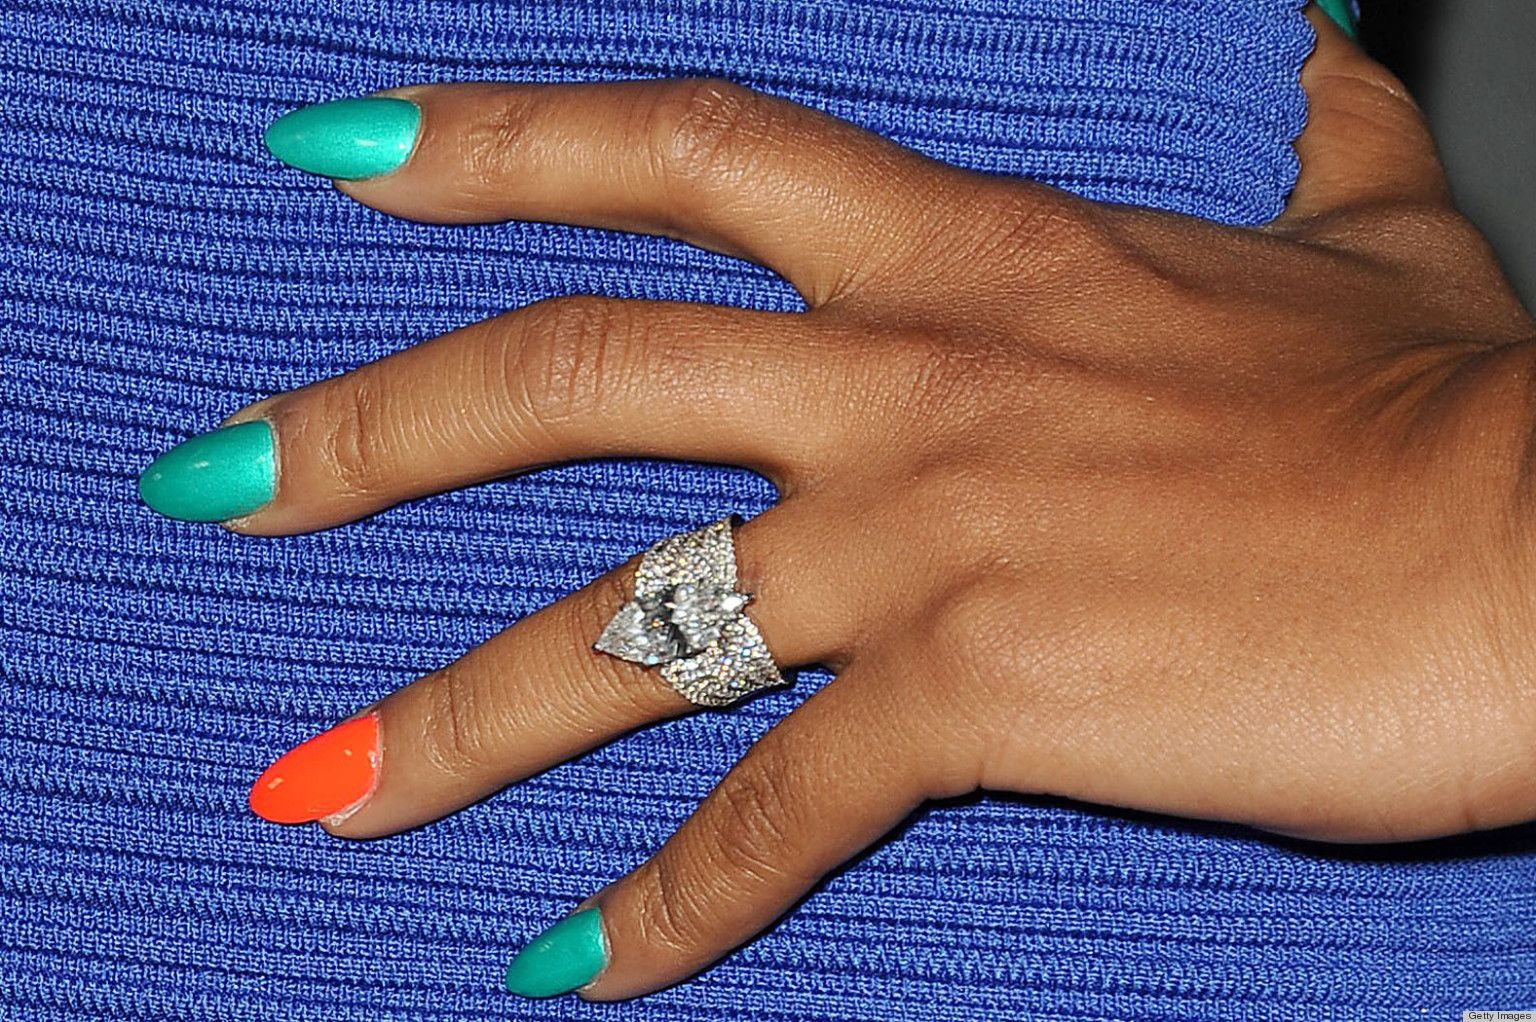 10 Nail Polish Colors To Enhance Your Tan | Nail polish colors ...